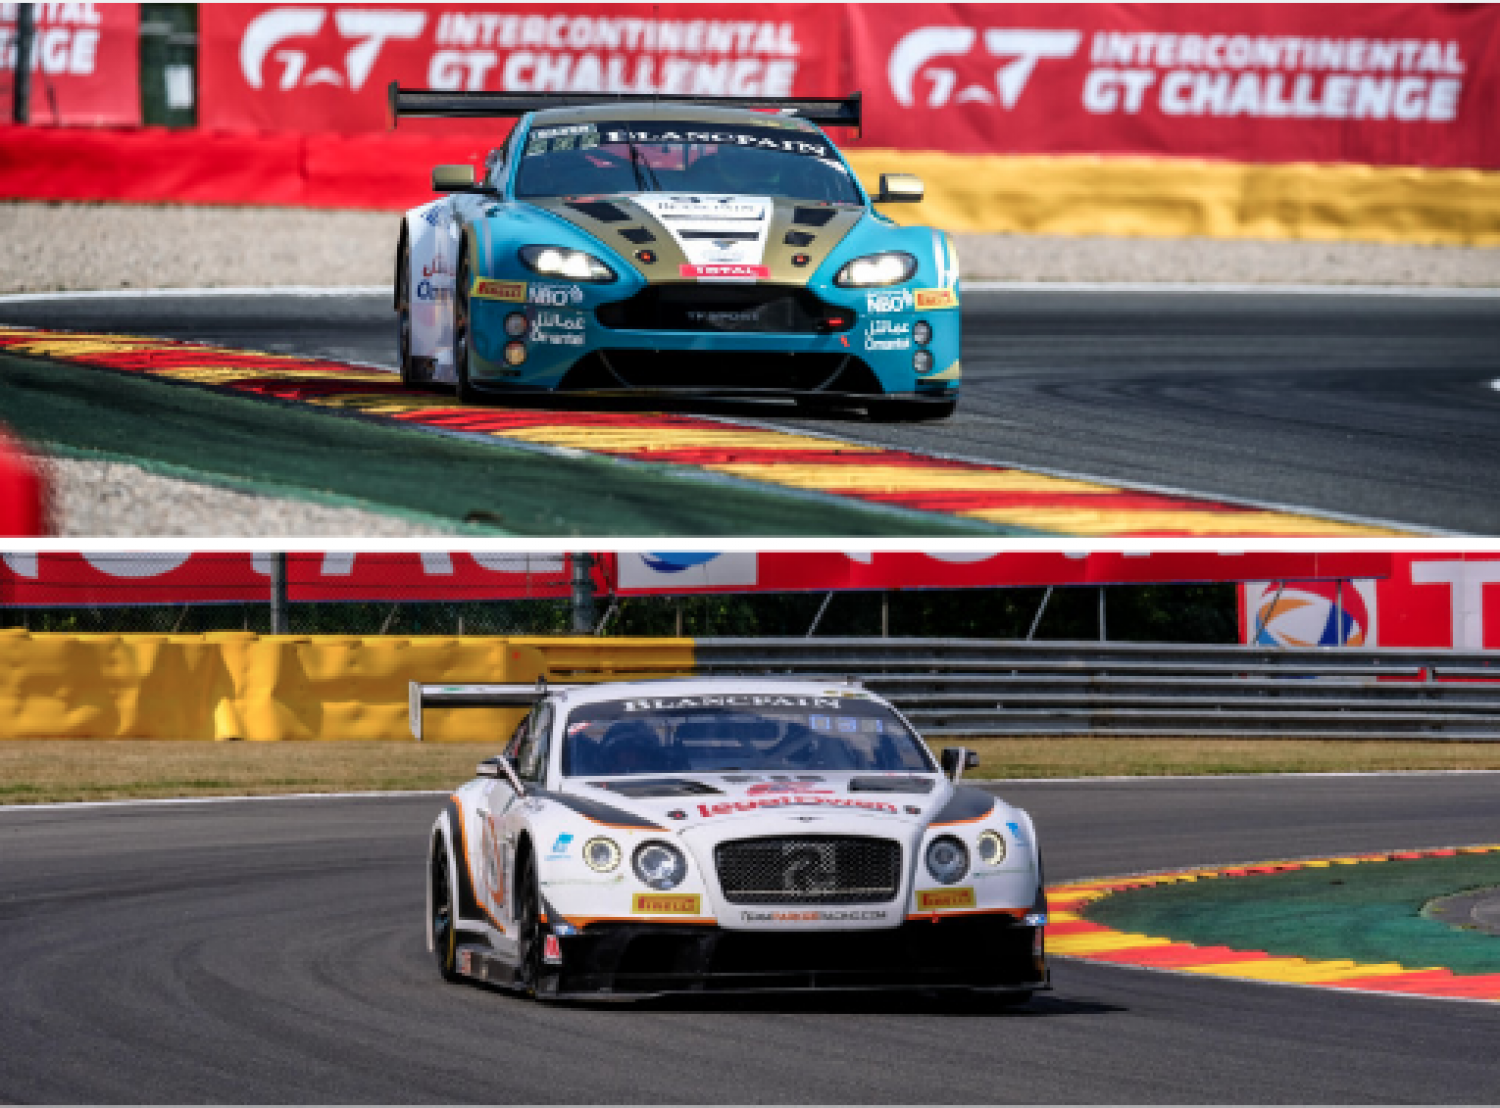 Pro-Am contenders Team Parker and Oman Racing with TF Sport confirm 2019 line-ups